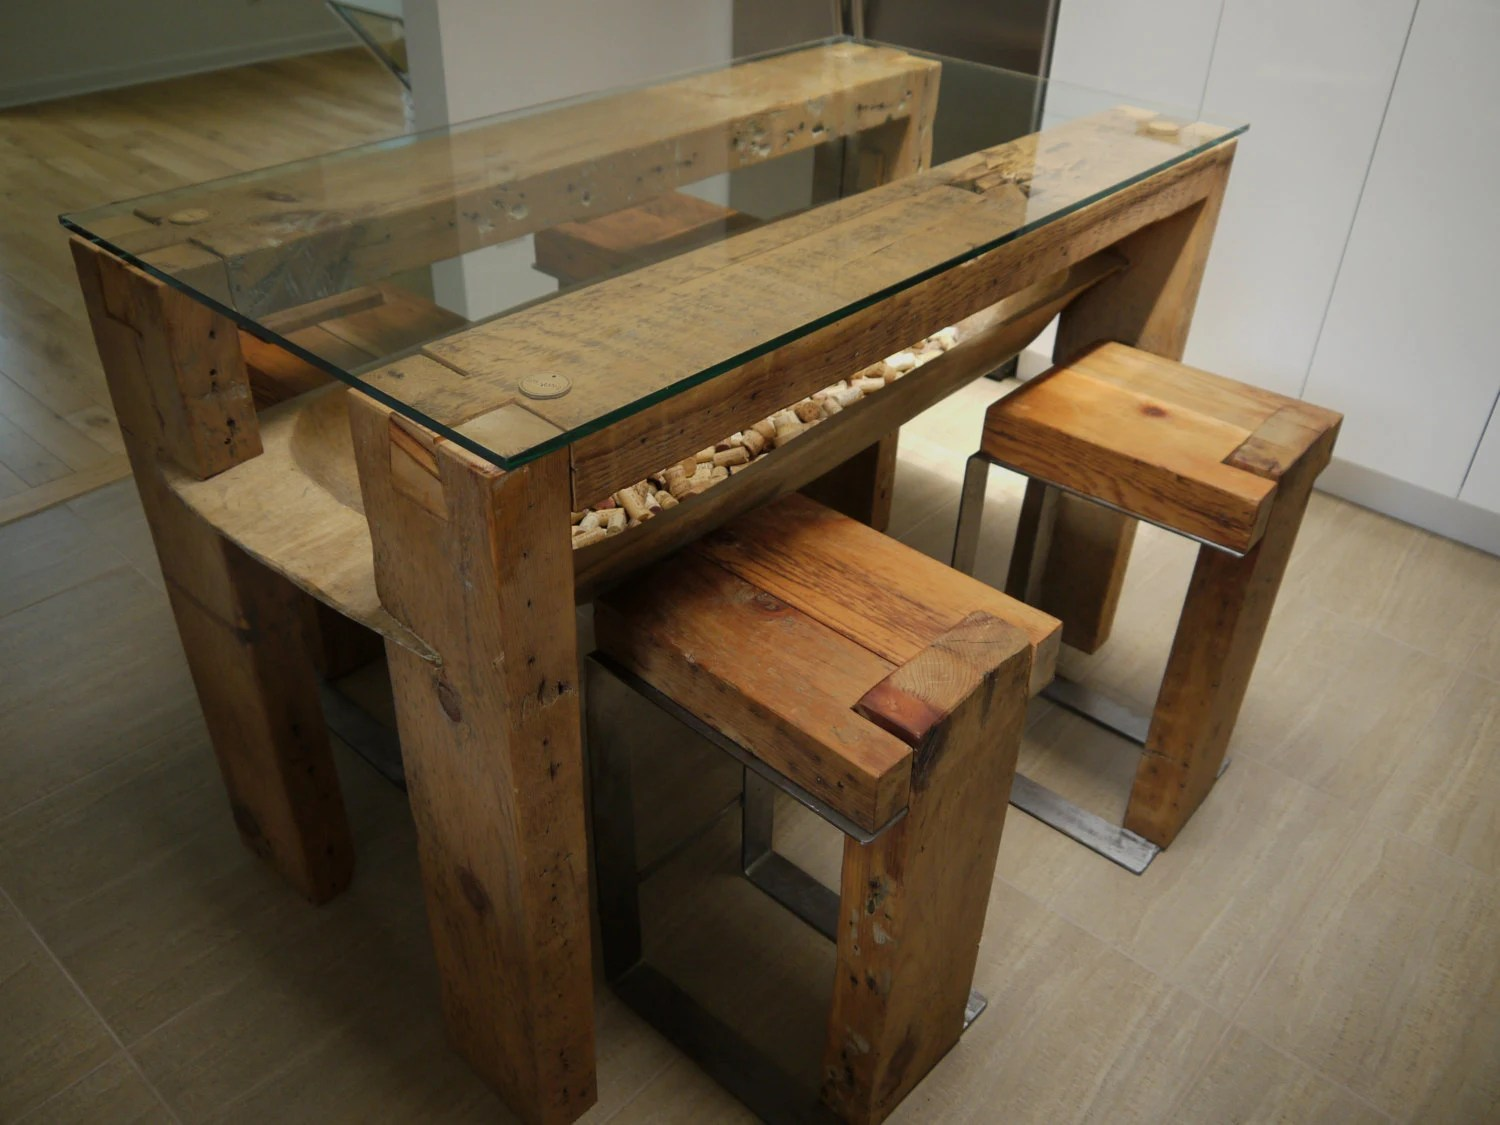 Reclaimed Wood Dining Table. Glass Top. Reclaimed Wood Kitchen